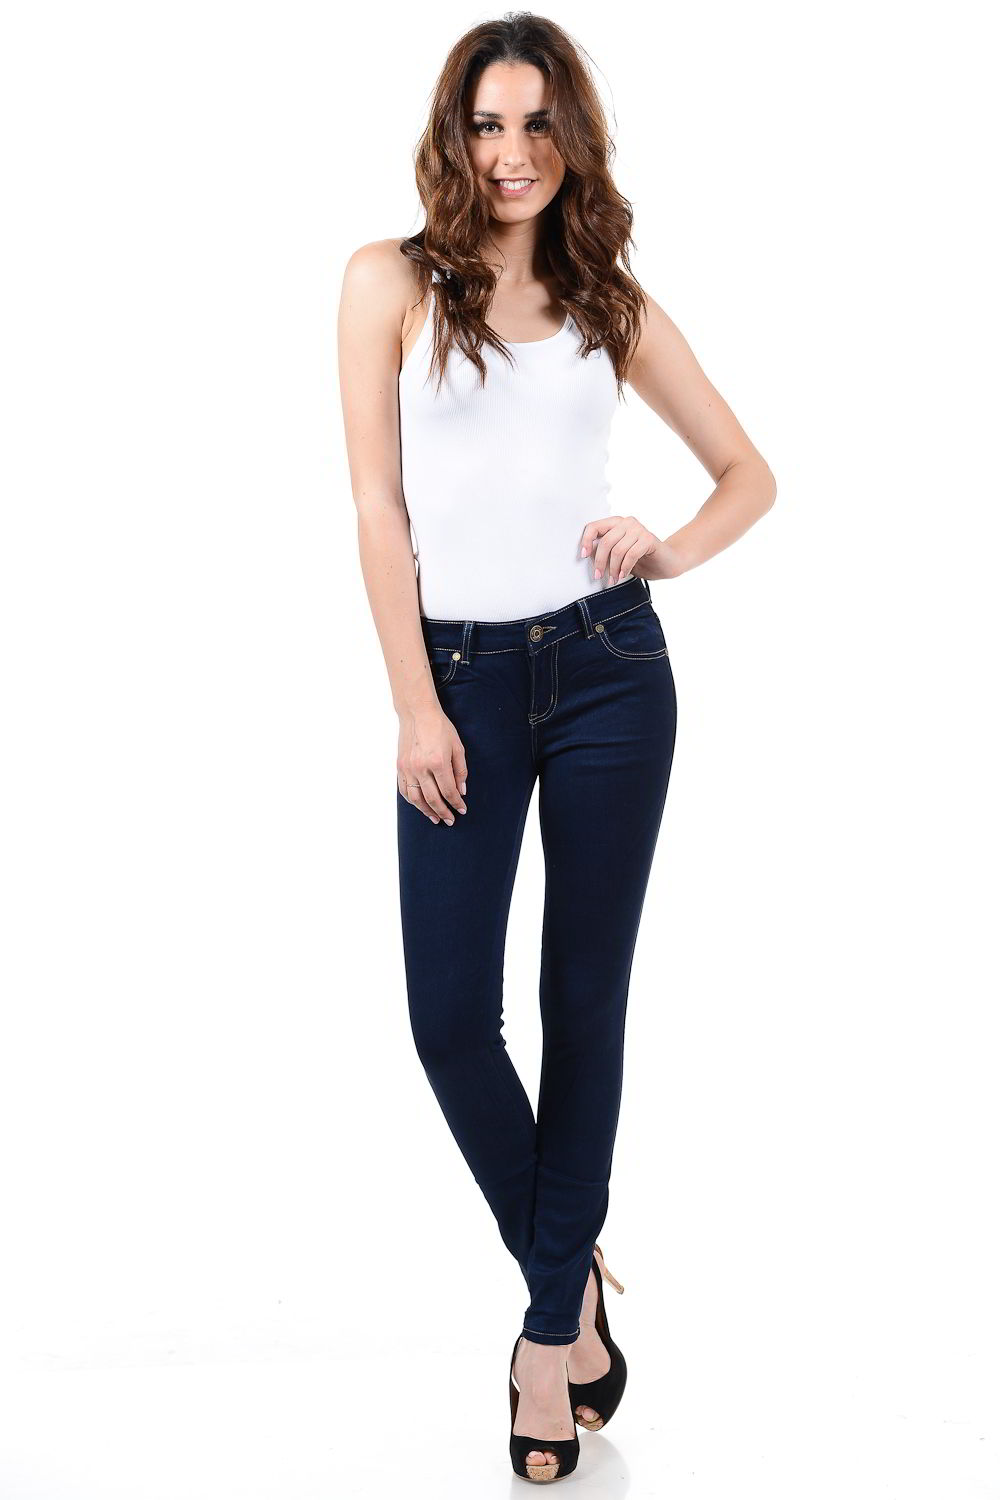 Sweet Look Premium Edition Women's Jeans - Push Up - Style WG0247